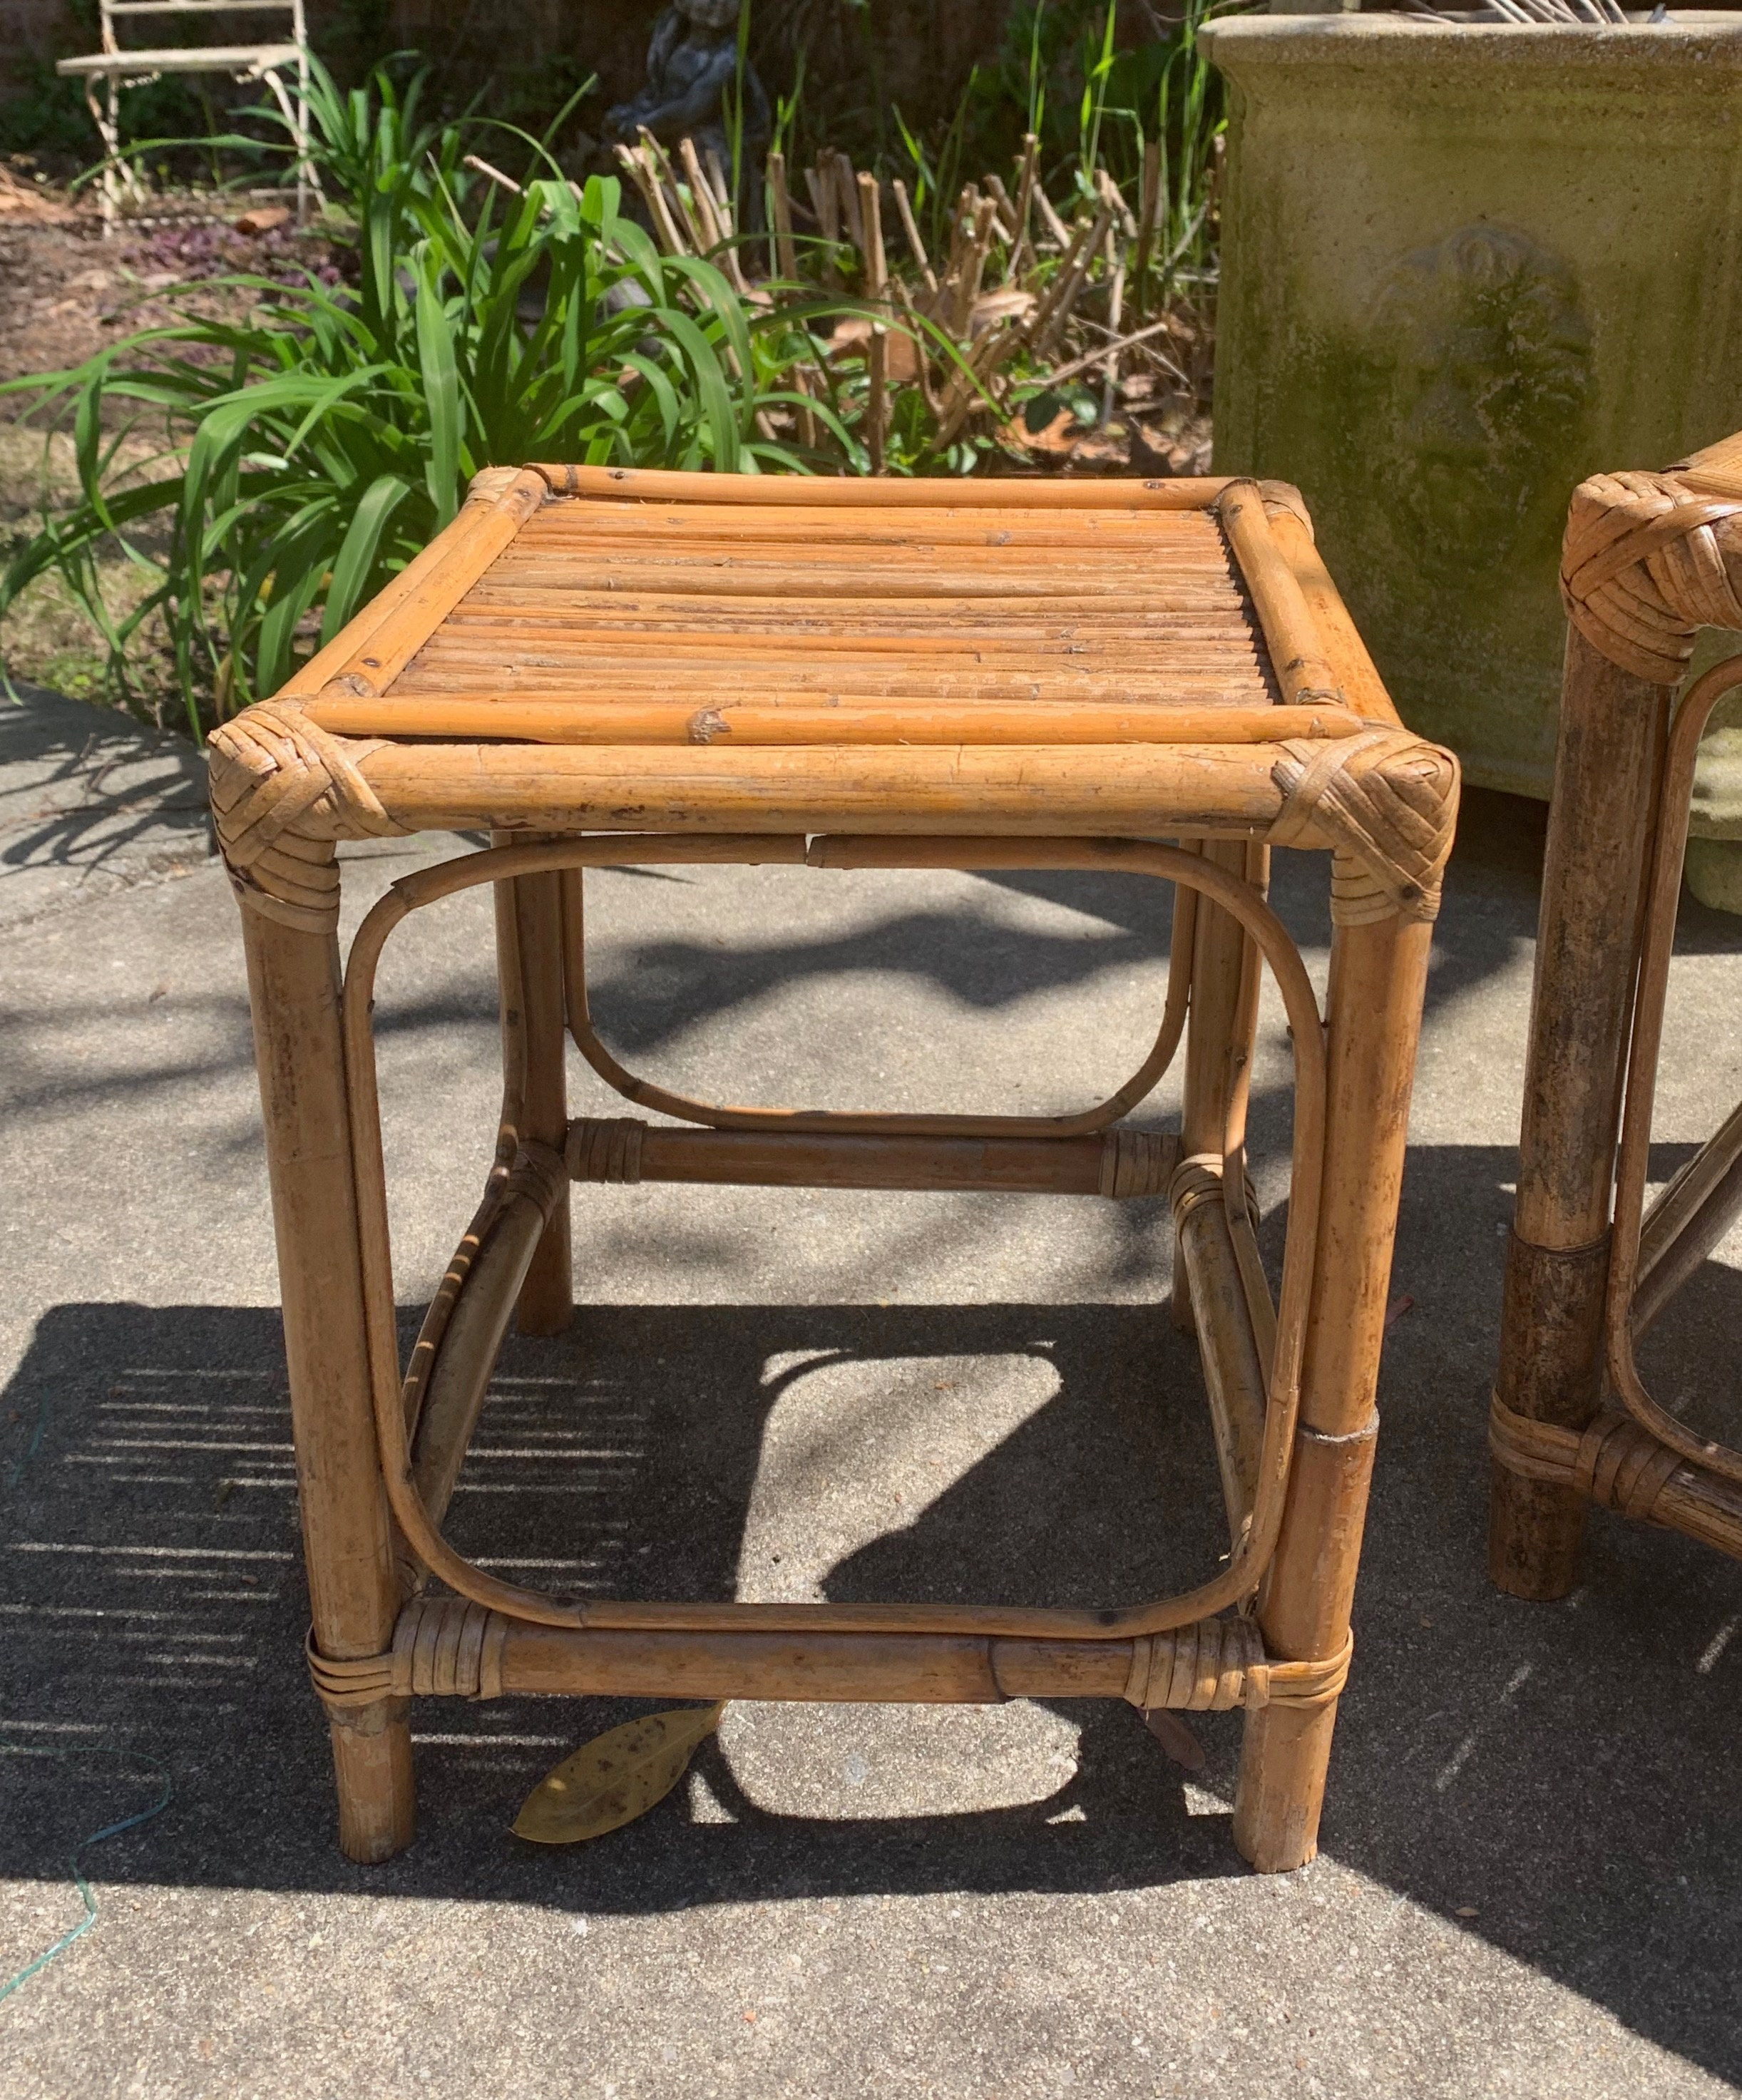 Magnificent Small Bamboo Plant Stand 11 Inch Bamboo Stool Vintage Beatyapartments Chair Design Images Beatyapartmentscom